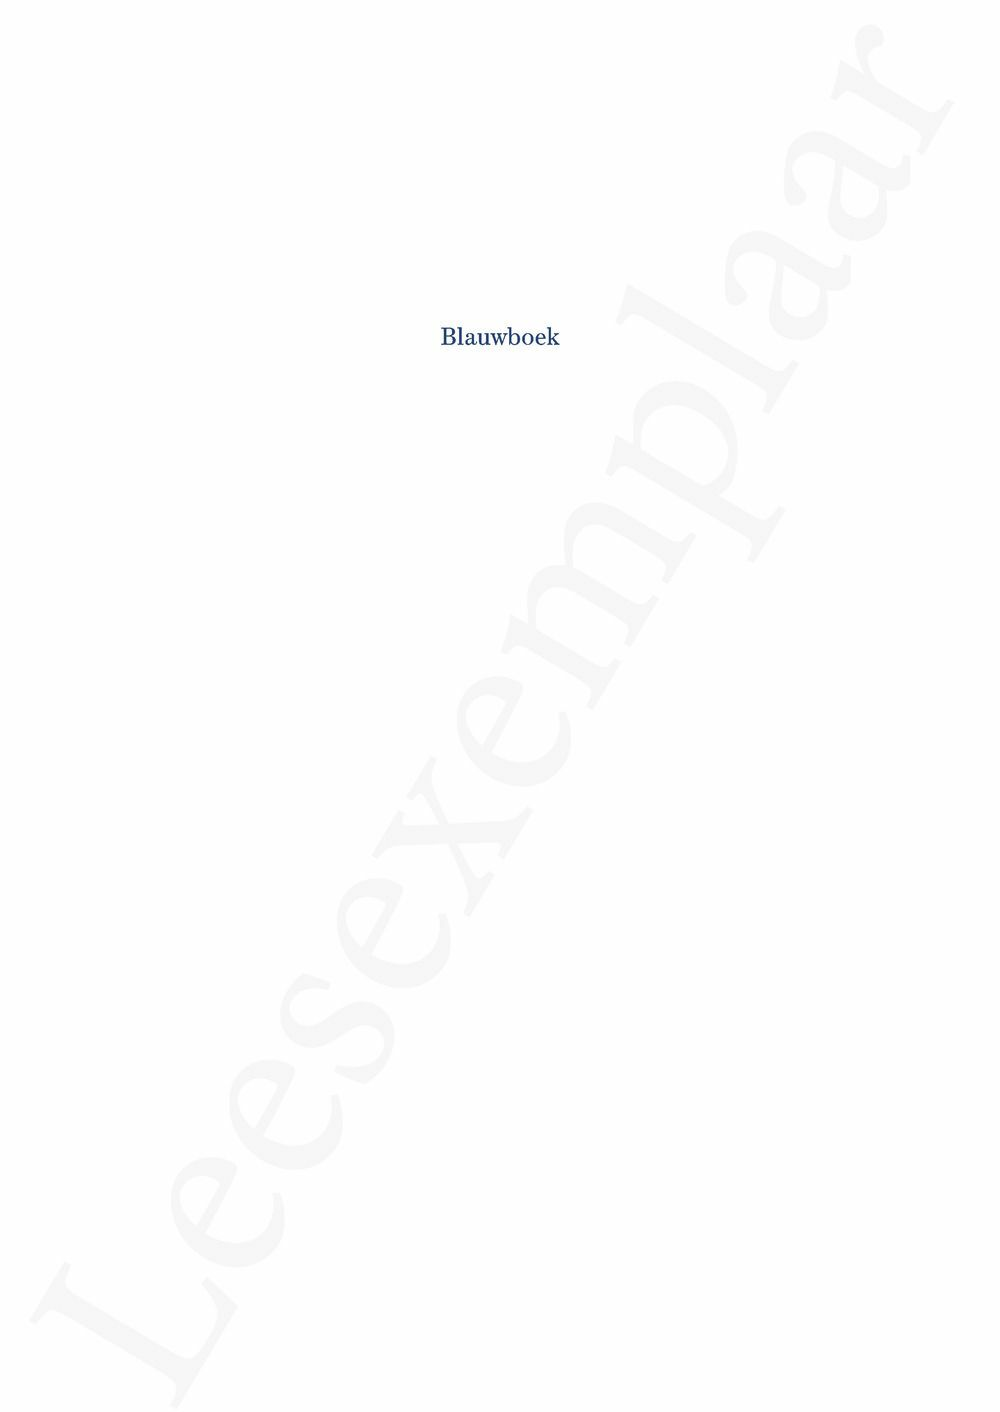 Preview: Blauwboek